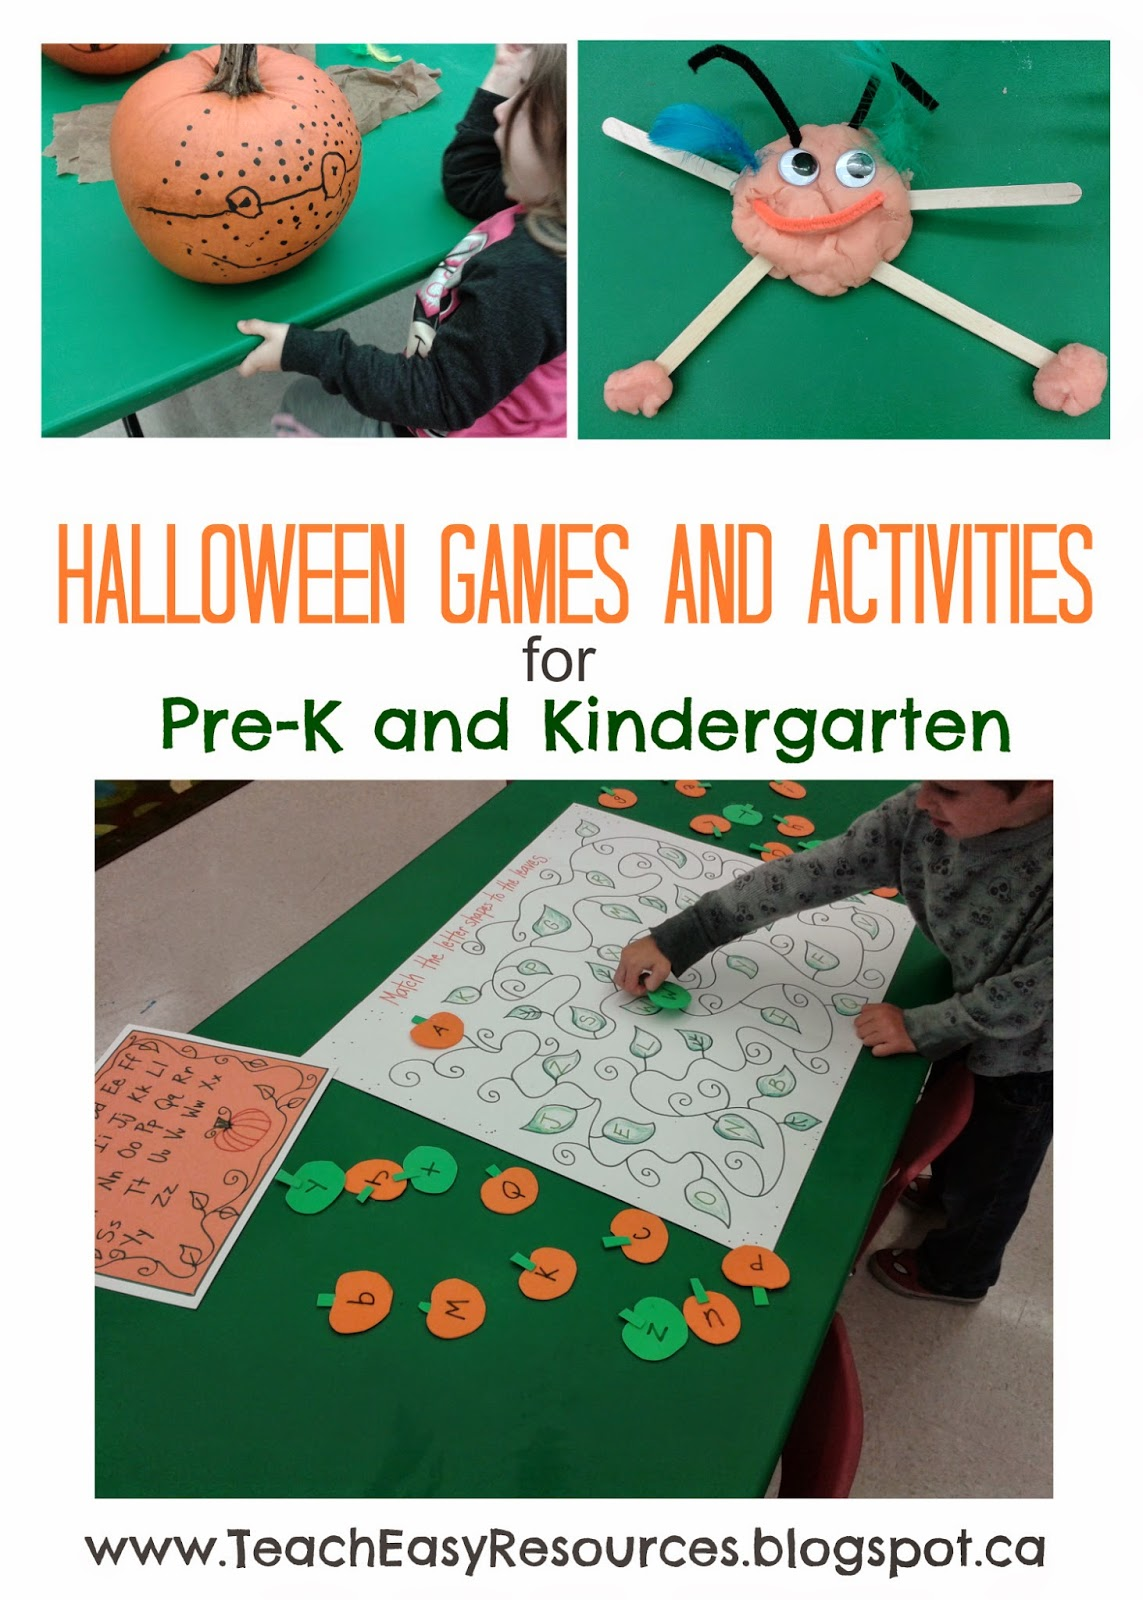 teach easy resources: halloween games and activities for pre-k and